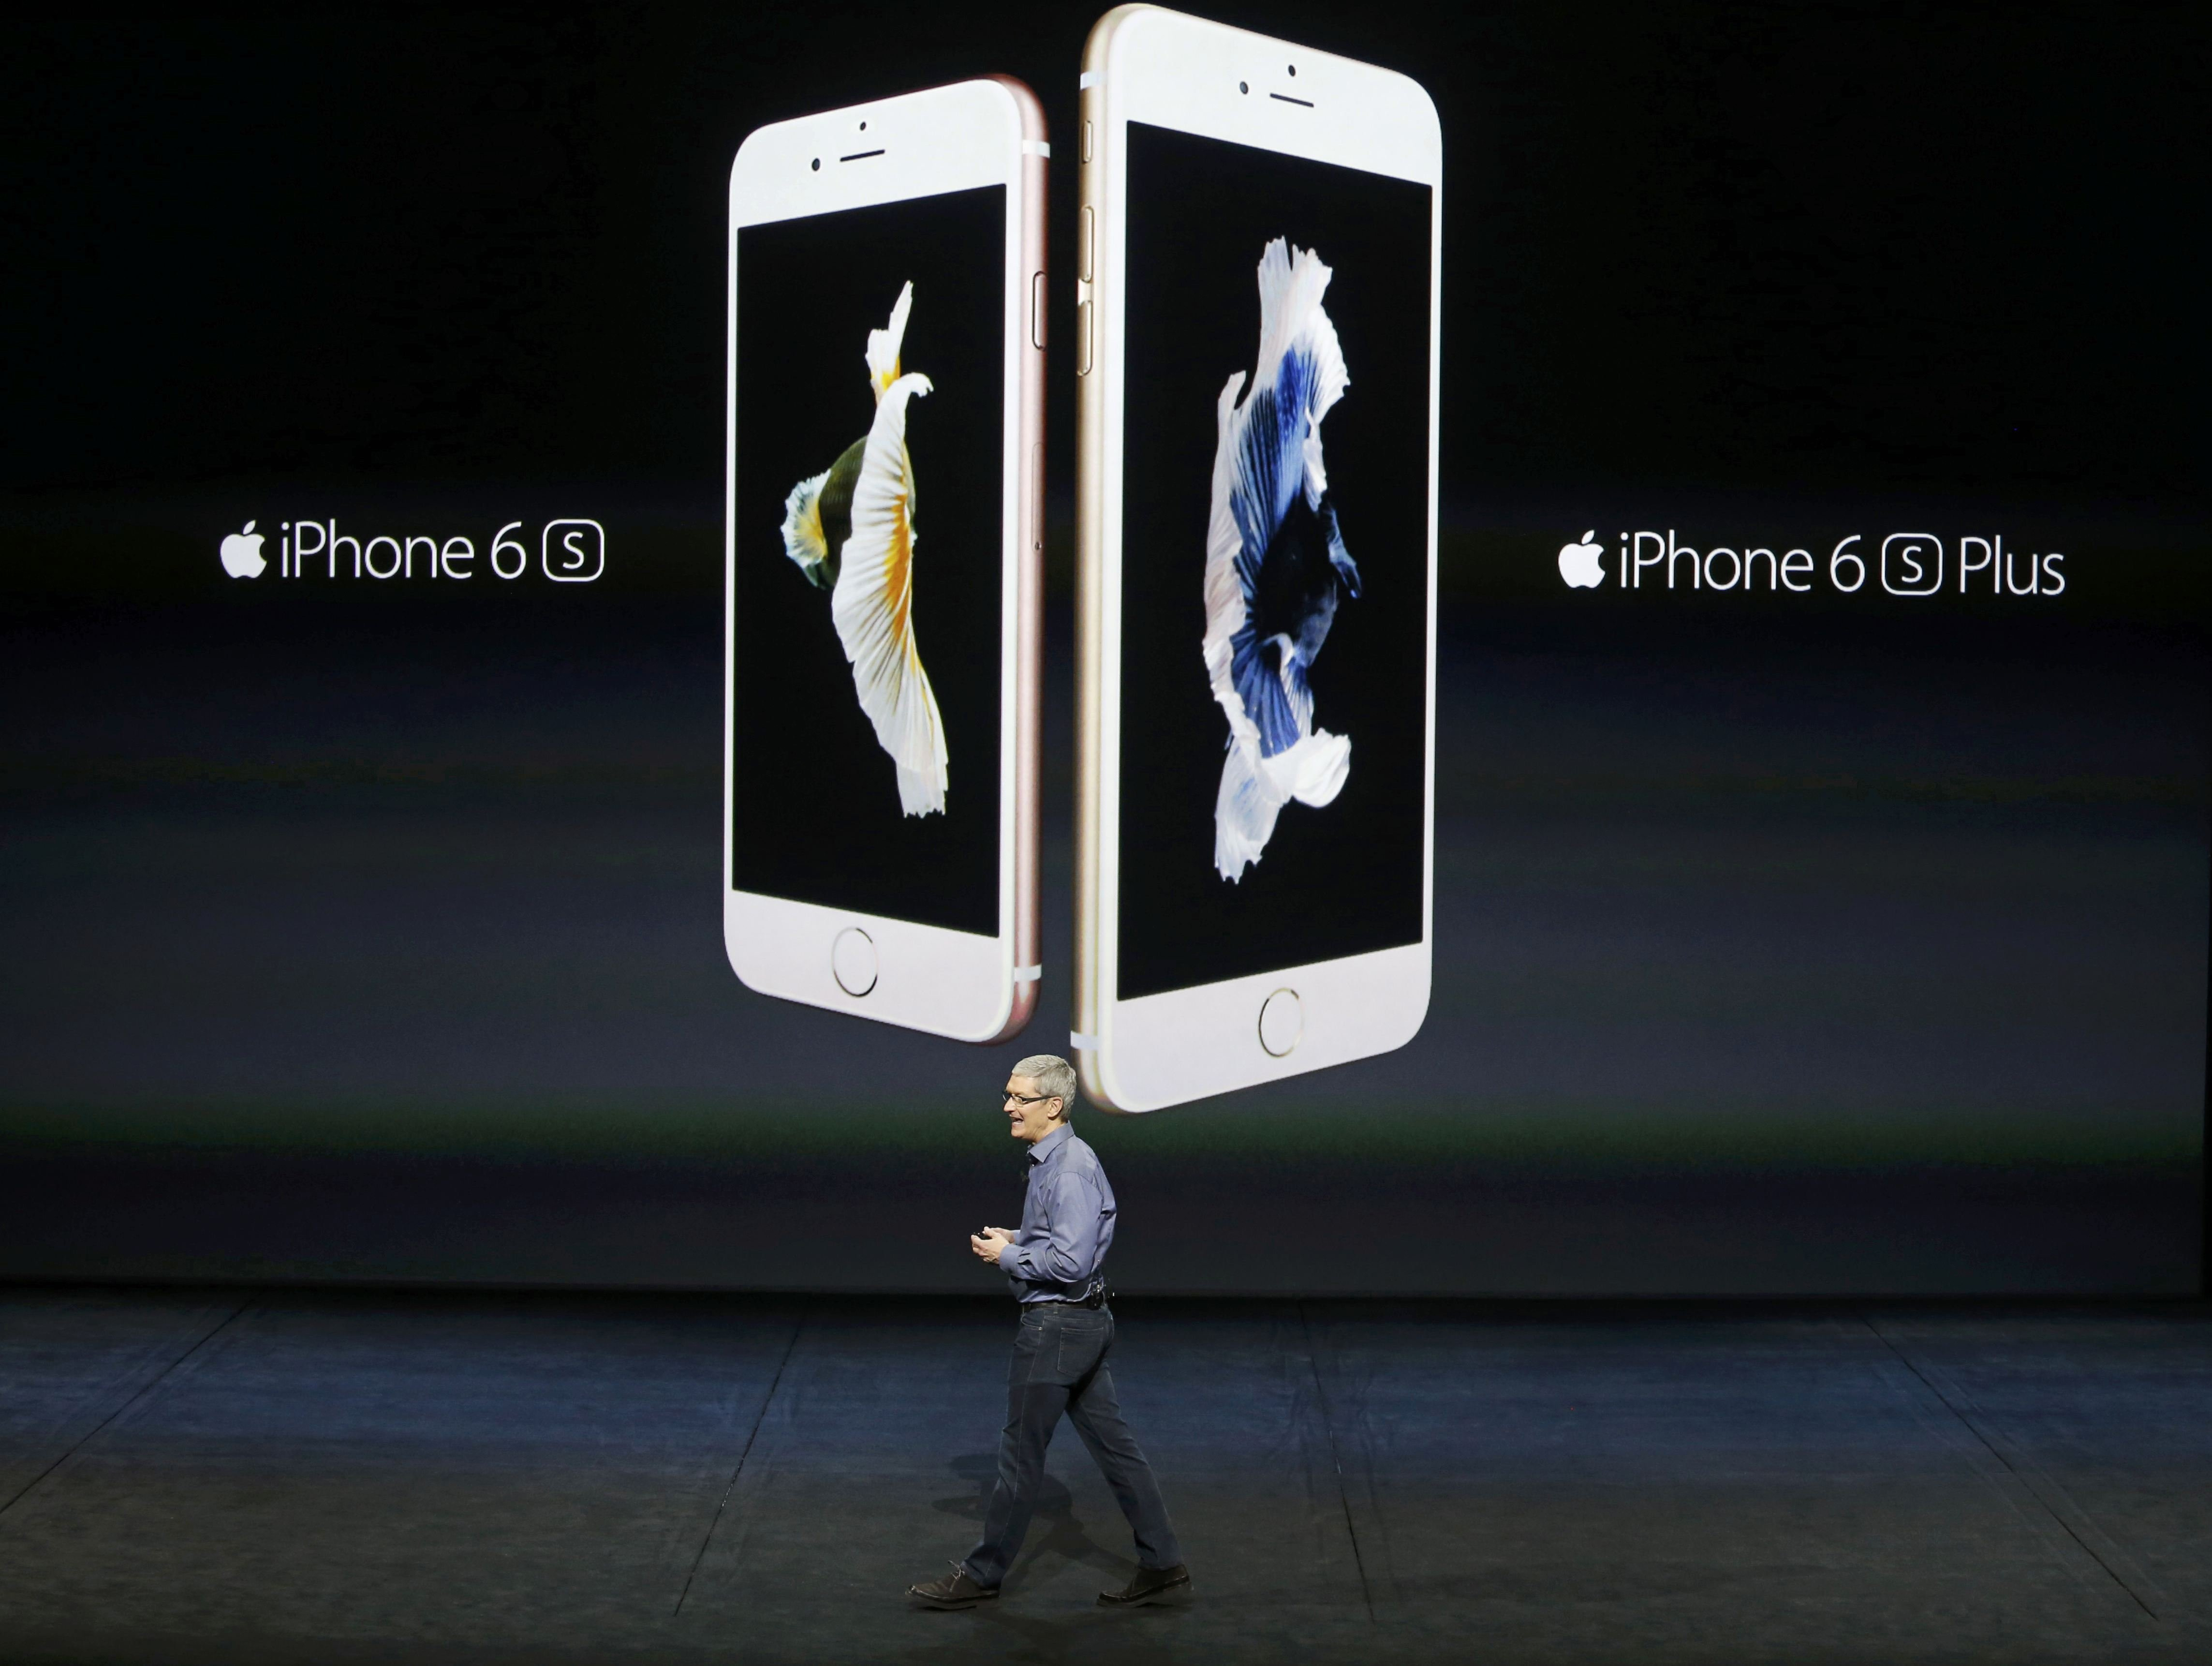 Apple CEO Tim Cook introduces the iPhone 6s and iPhone 6sPlus during an Apple media event in San Francisco, on Sept. 9, 2015.